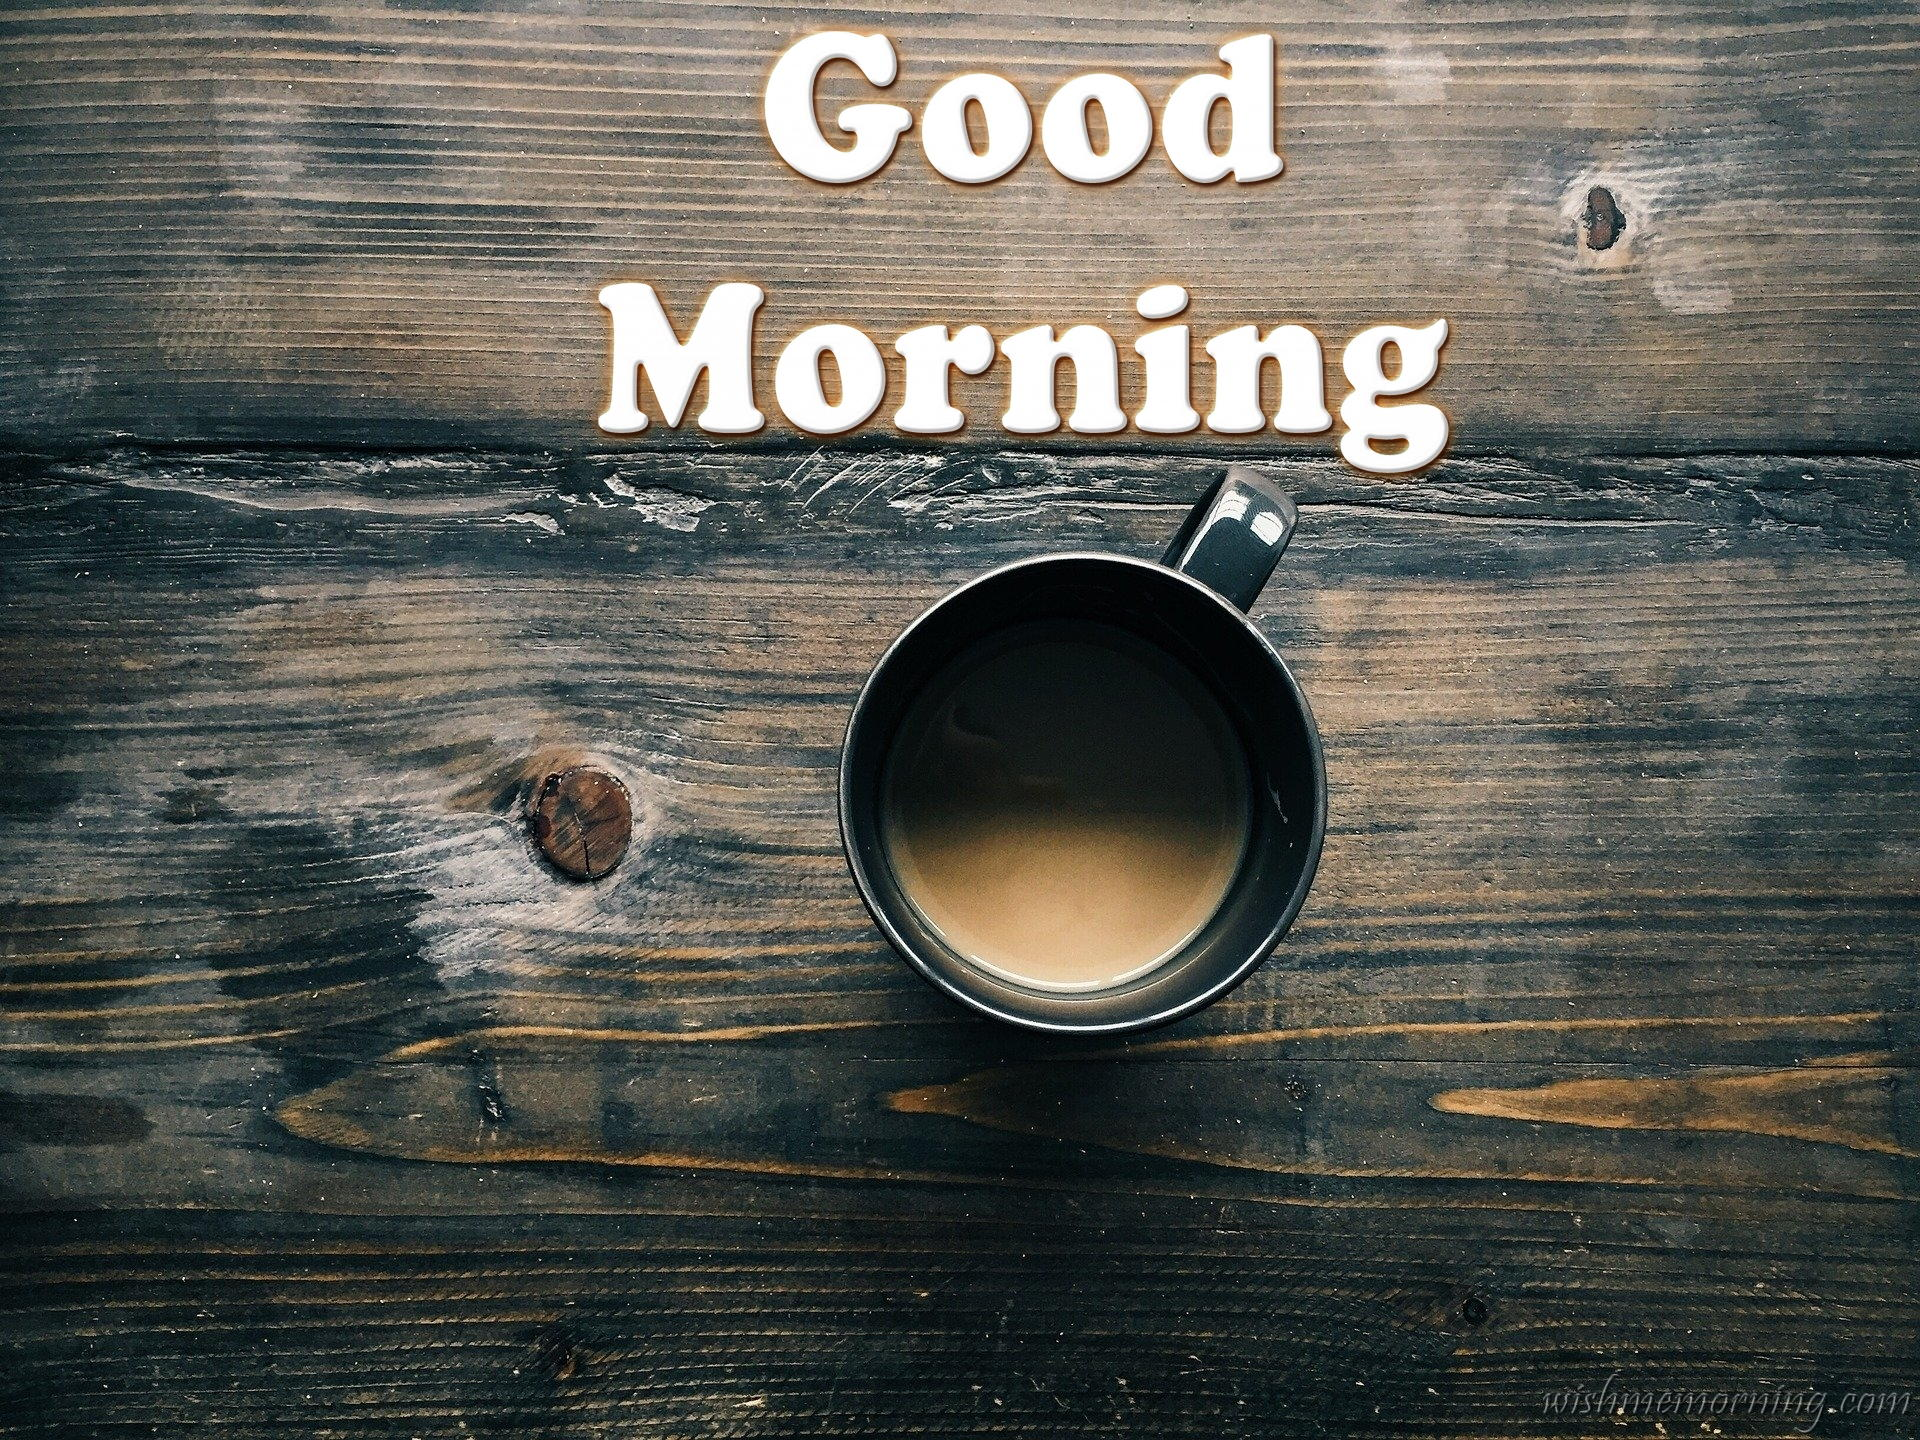 Elagant Black Cup on Teak Wood Table Filled With Coffee Good Morning Wish